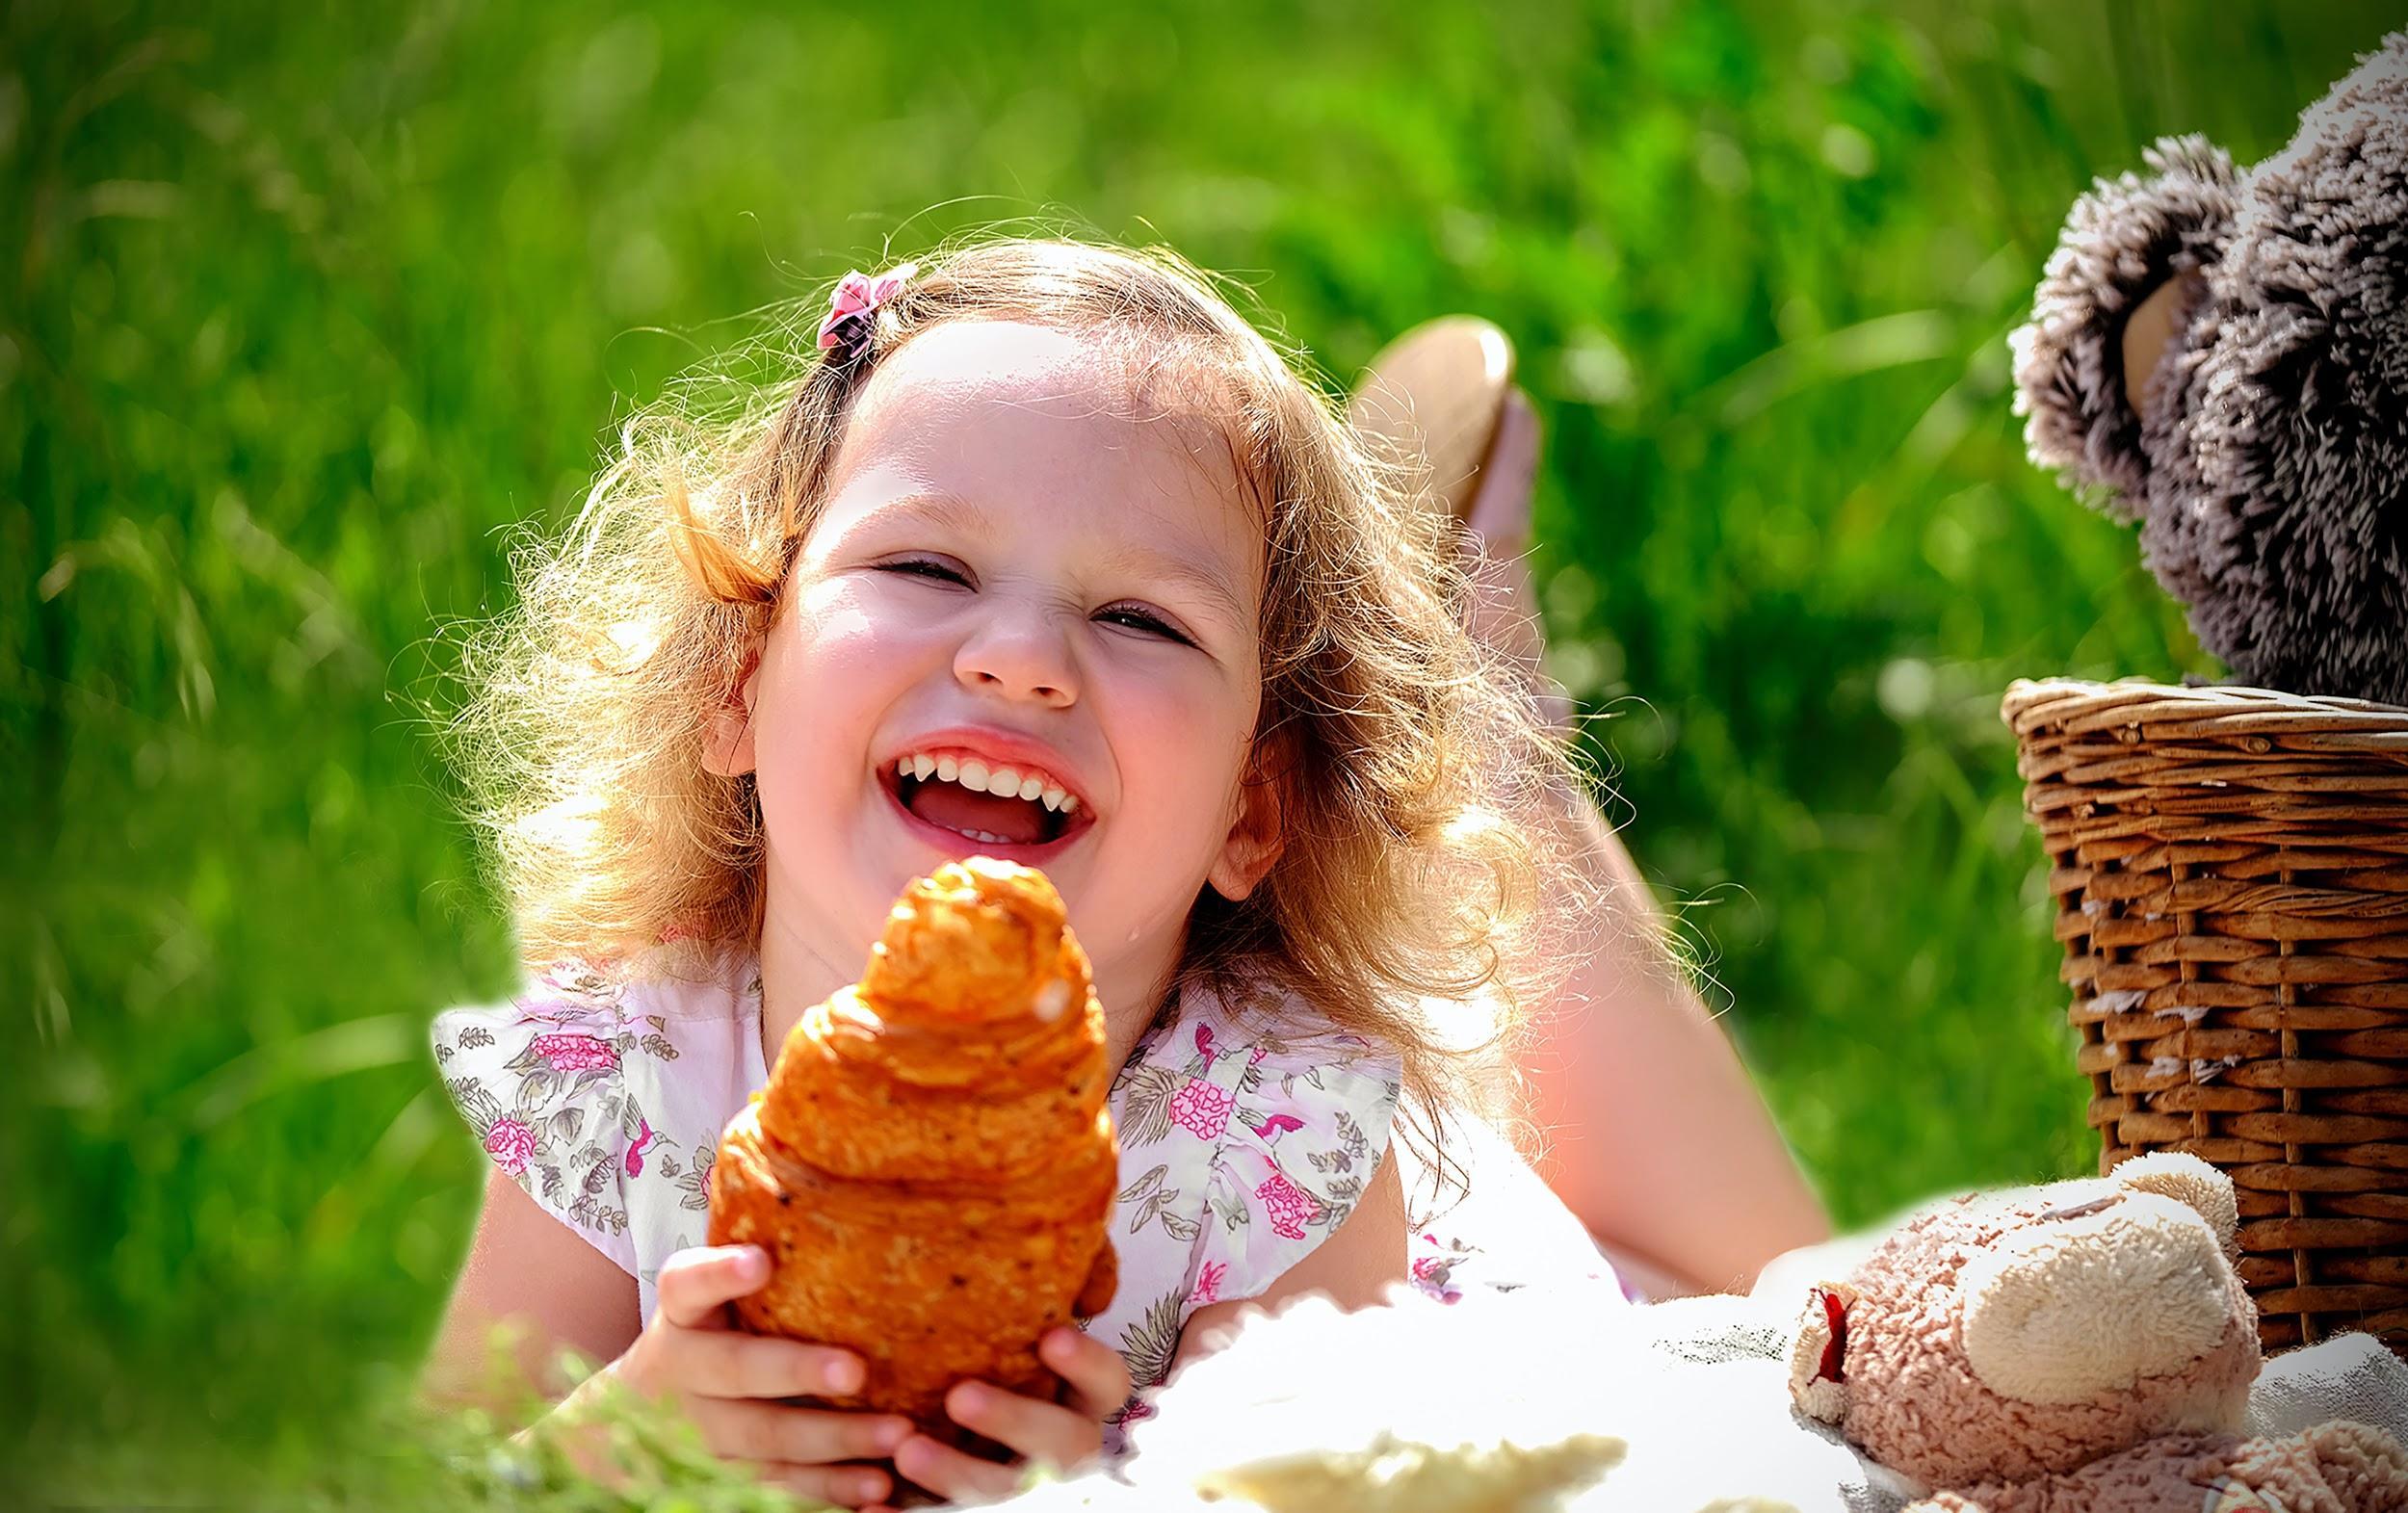 A little girl laying in a field on her tummy. She is looking at the camera smiling and laughing, and holding a croissant.